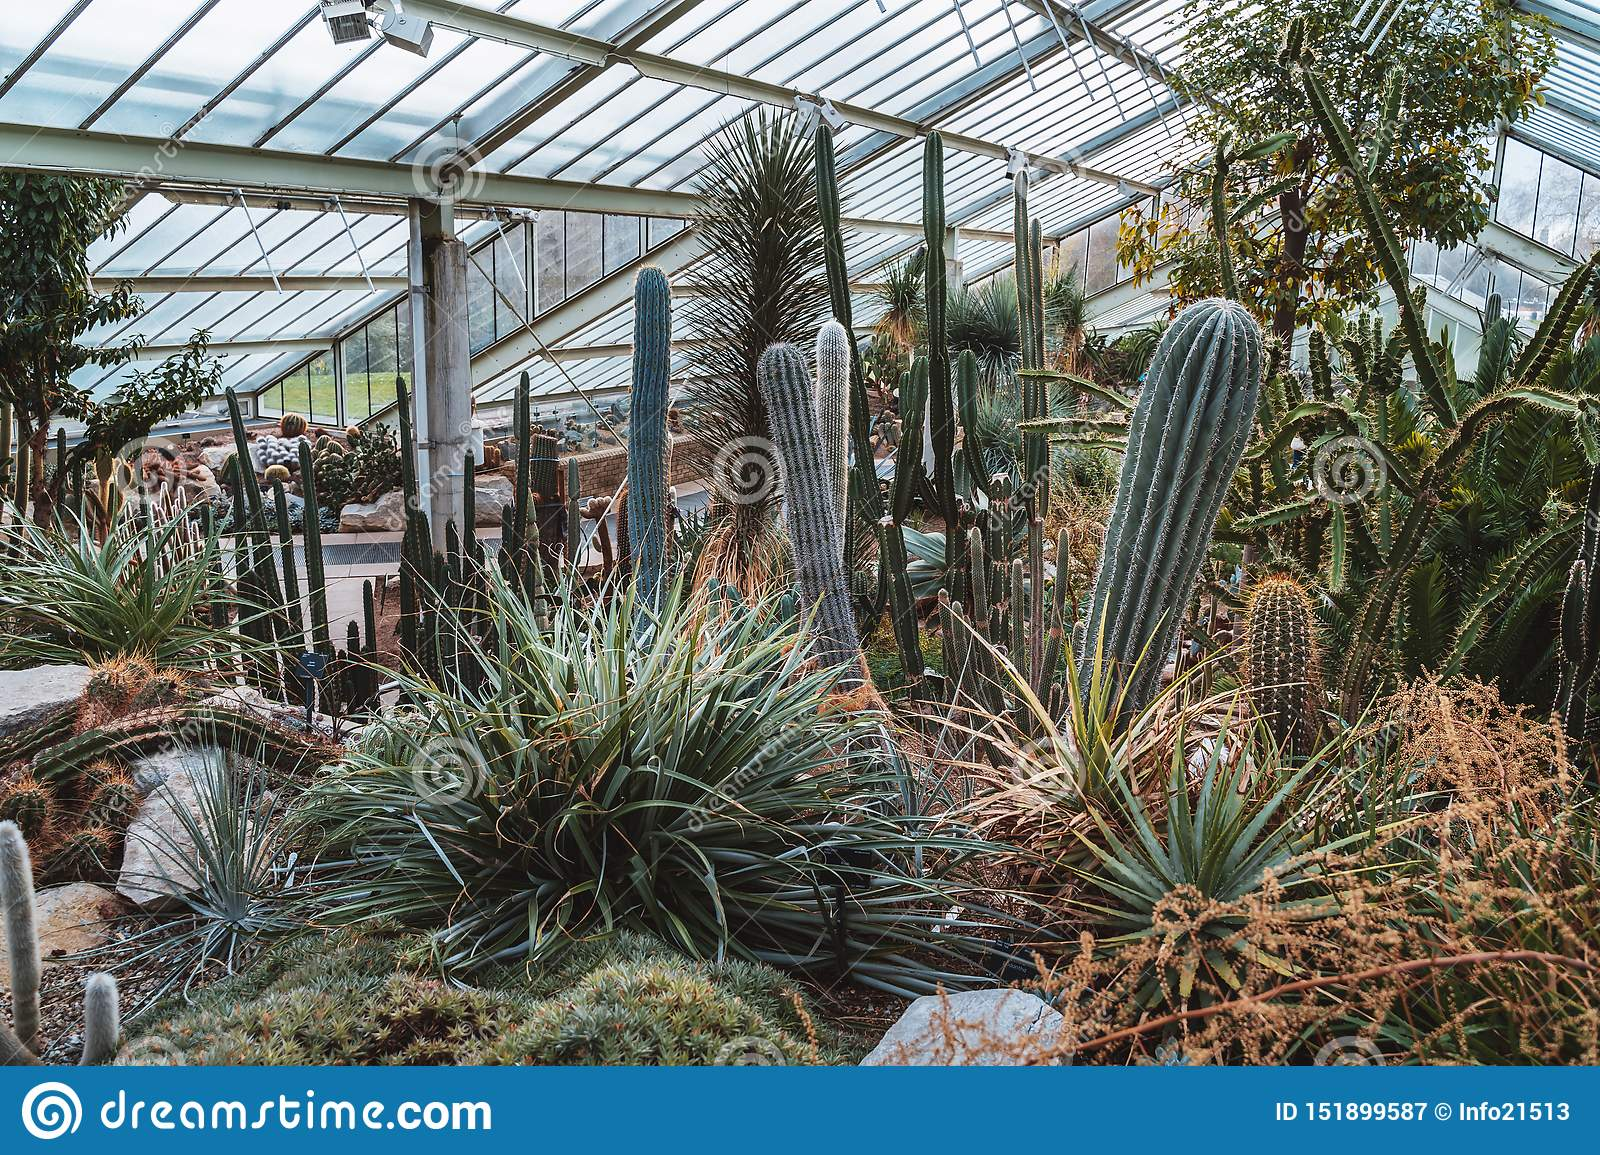 Cactus and plants from ten different climate zone